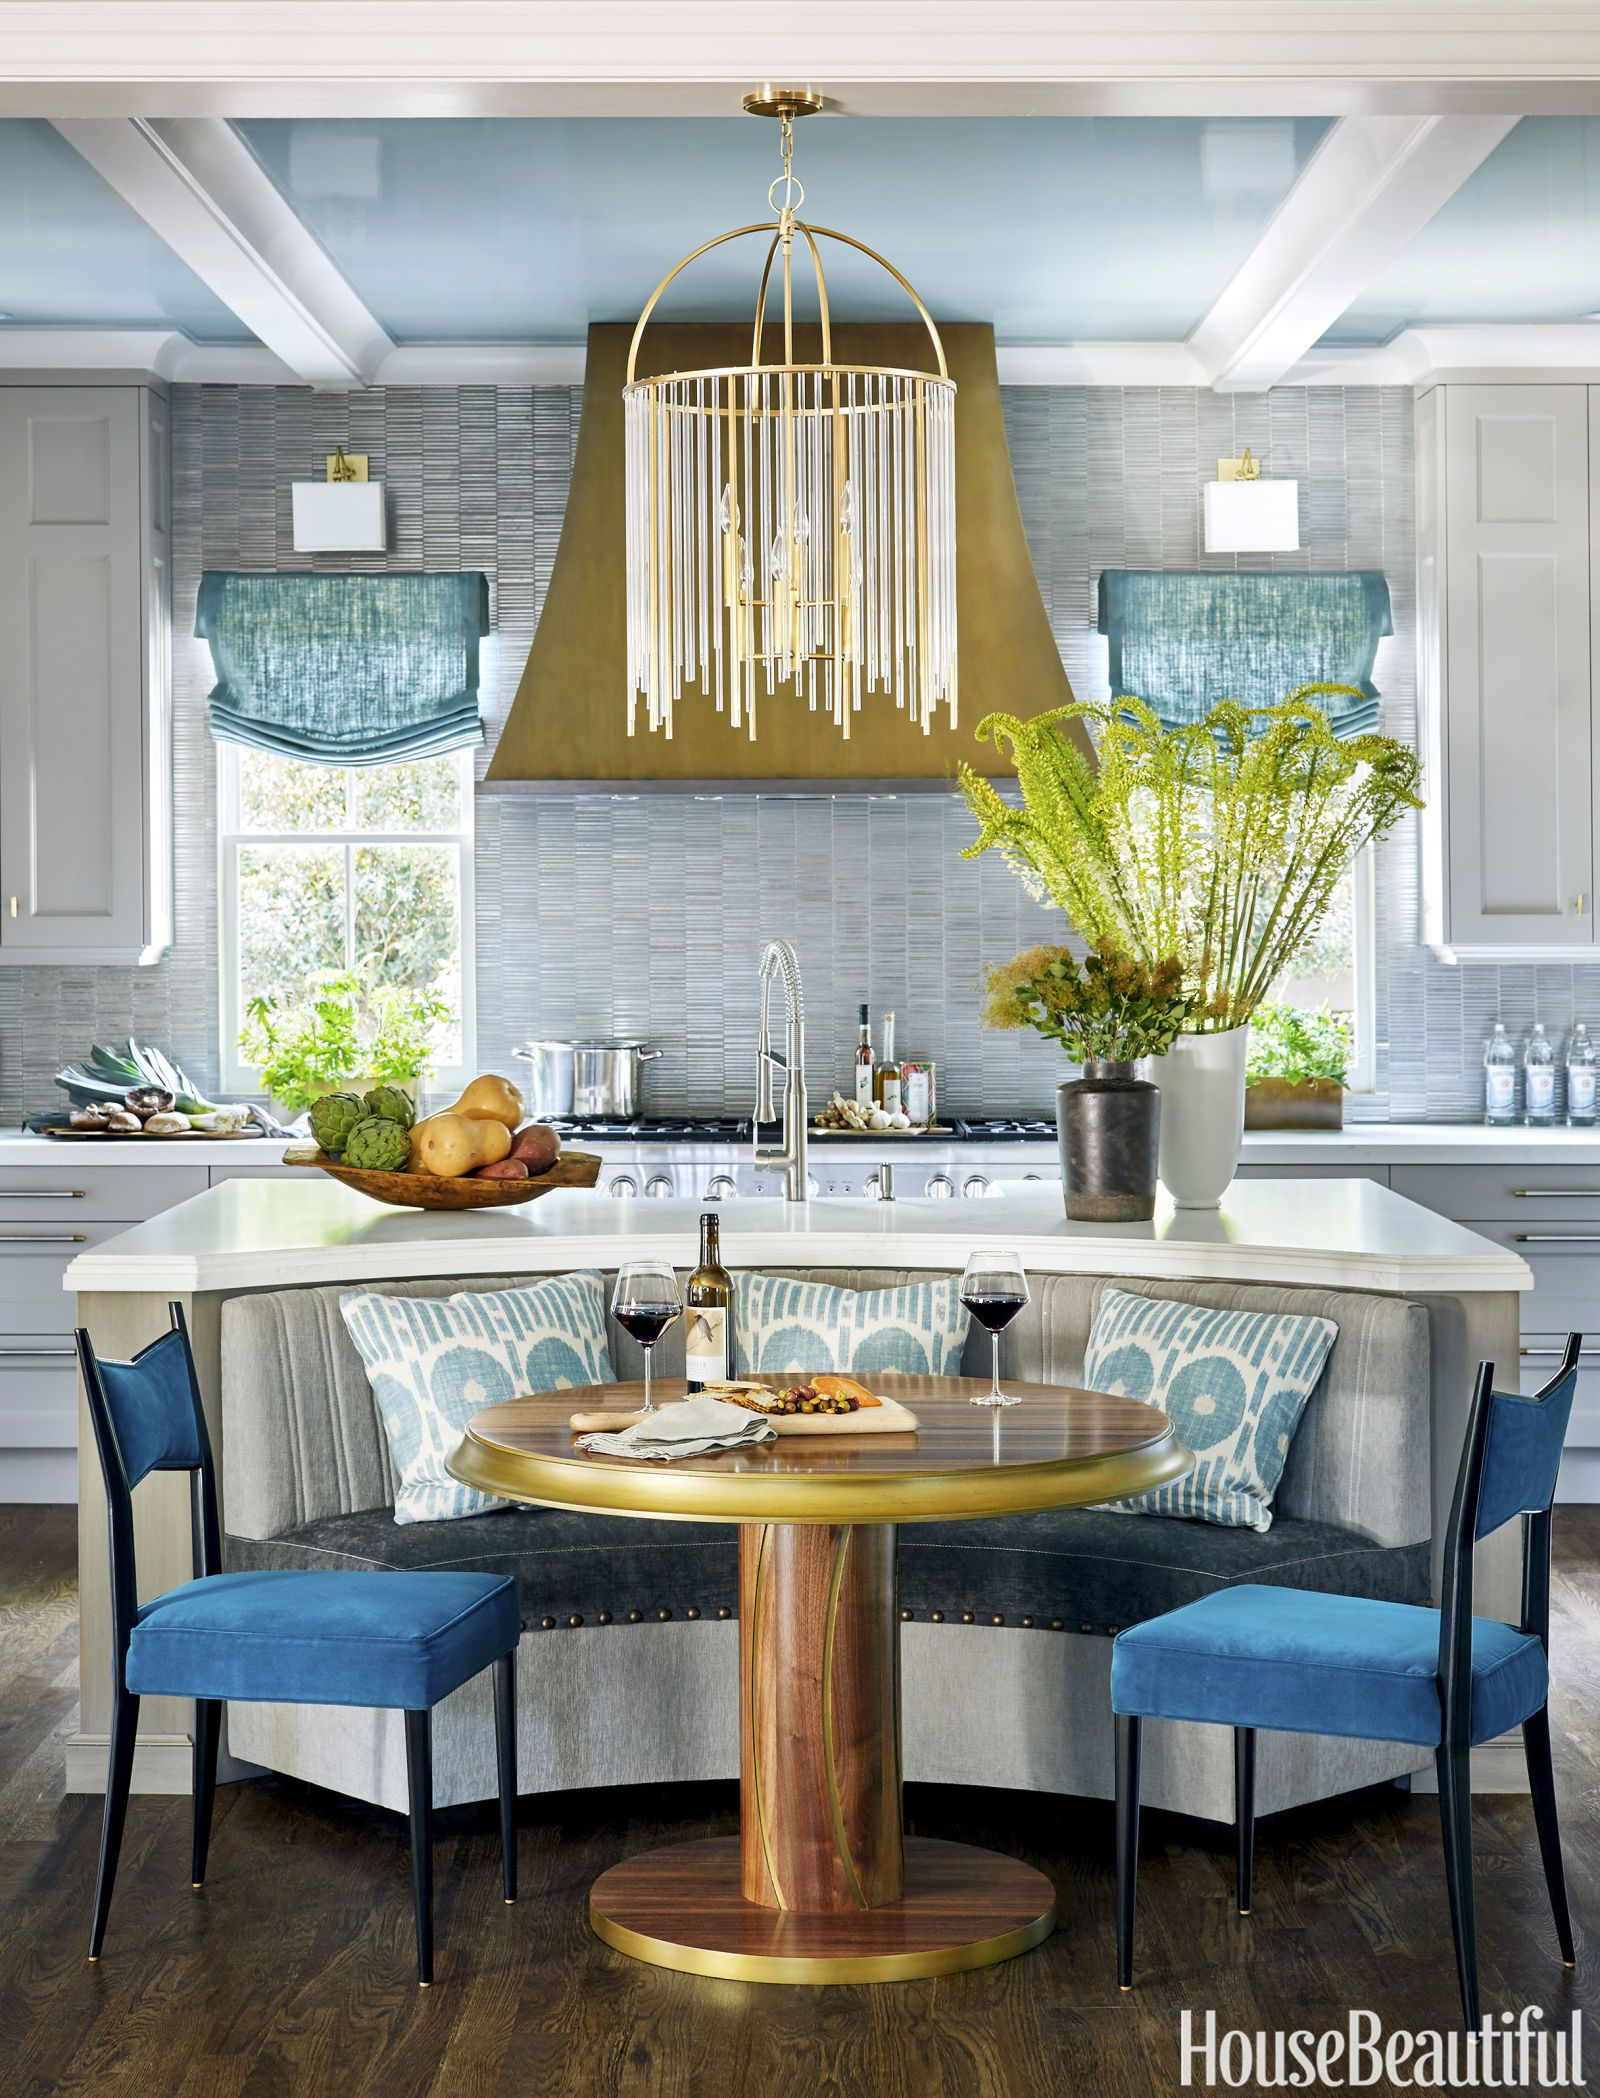 Shop Our Kitchen Of The Year Product Guide Kitchen Island With Seating Kitchen Banquette Kitchen Remodel